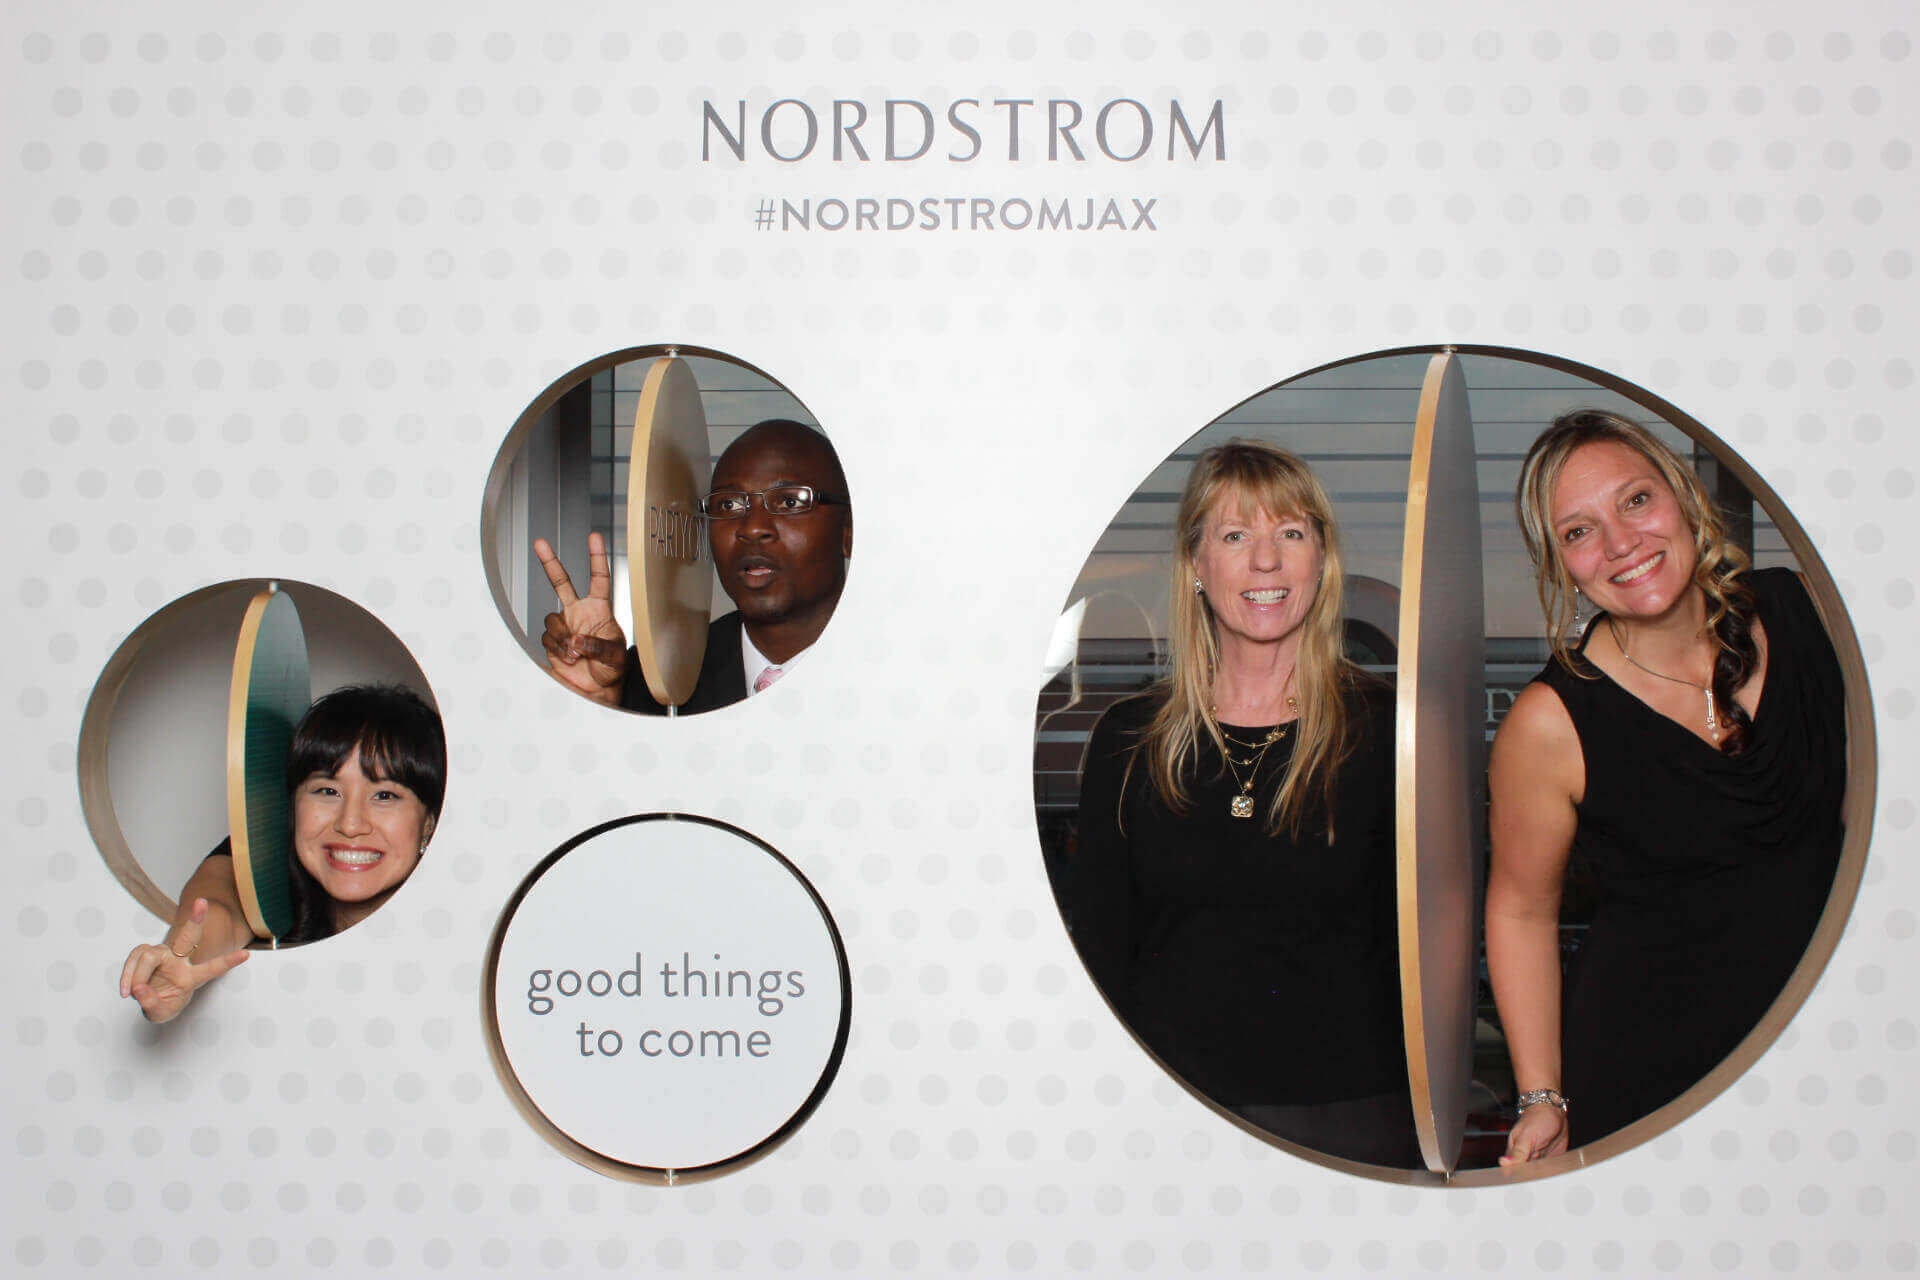 Nordstrom Corporate image